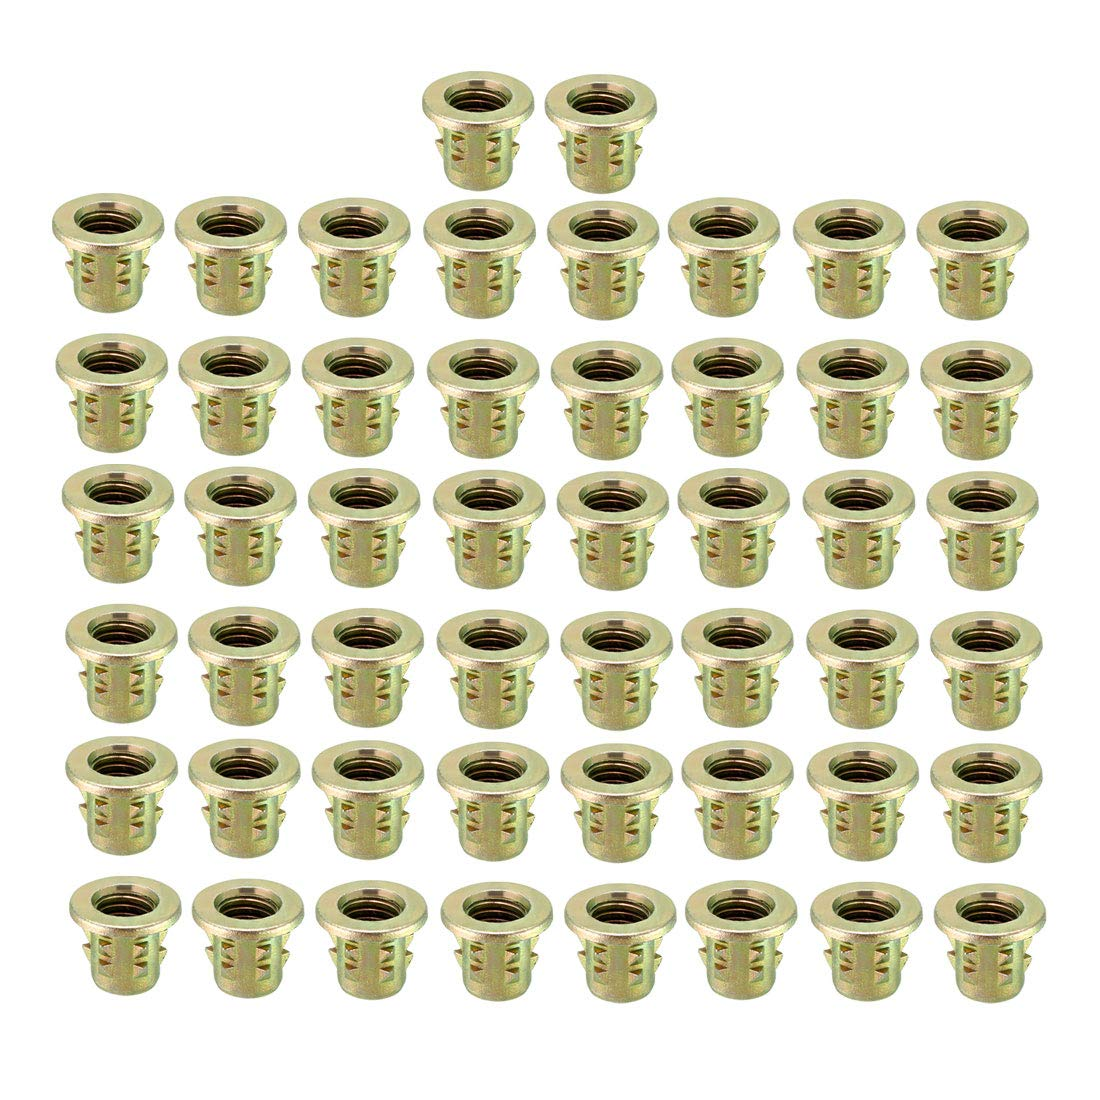 uxcell M8x13mm Wood Insert E-Nut Interface Screws Furniture Fittings Zinc Alloy 50pcs by uxcell